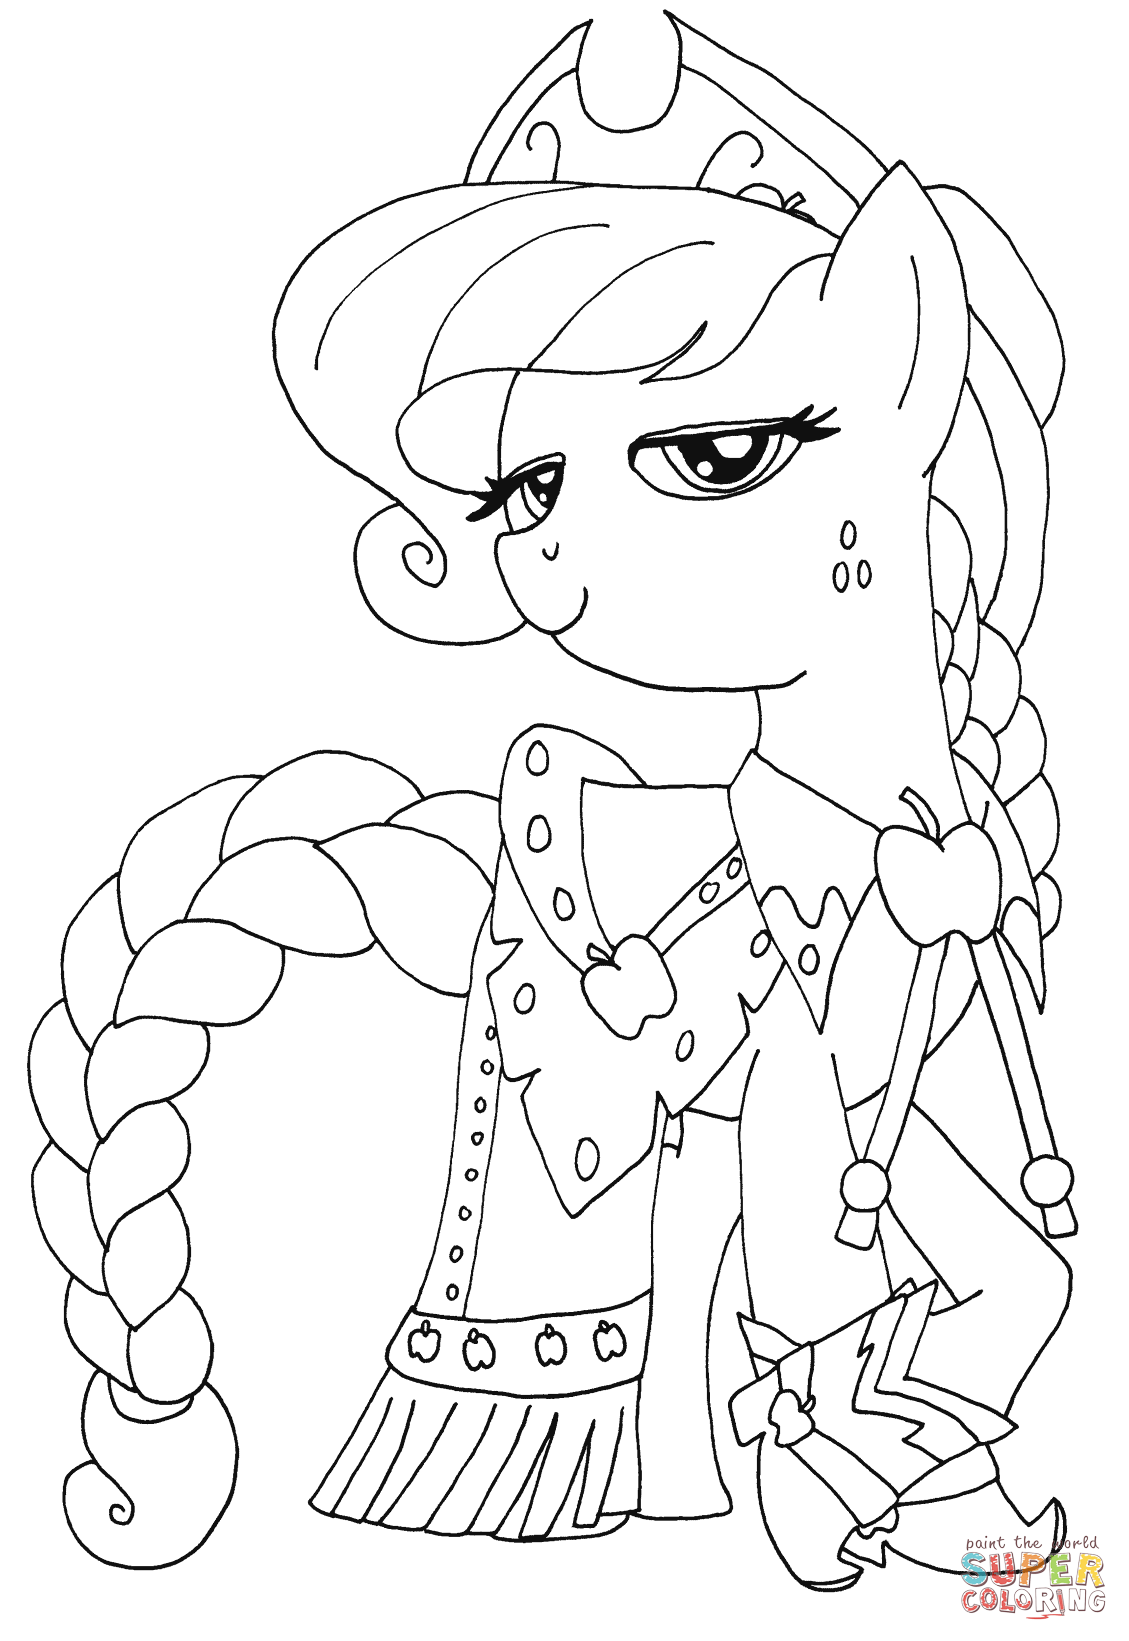 Mobile shimmer and shine coloring games coloring pages ausmalbilder - Princess Applejack From My Little Pony Pinkie Pie From My Little Pony Coloring Page